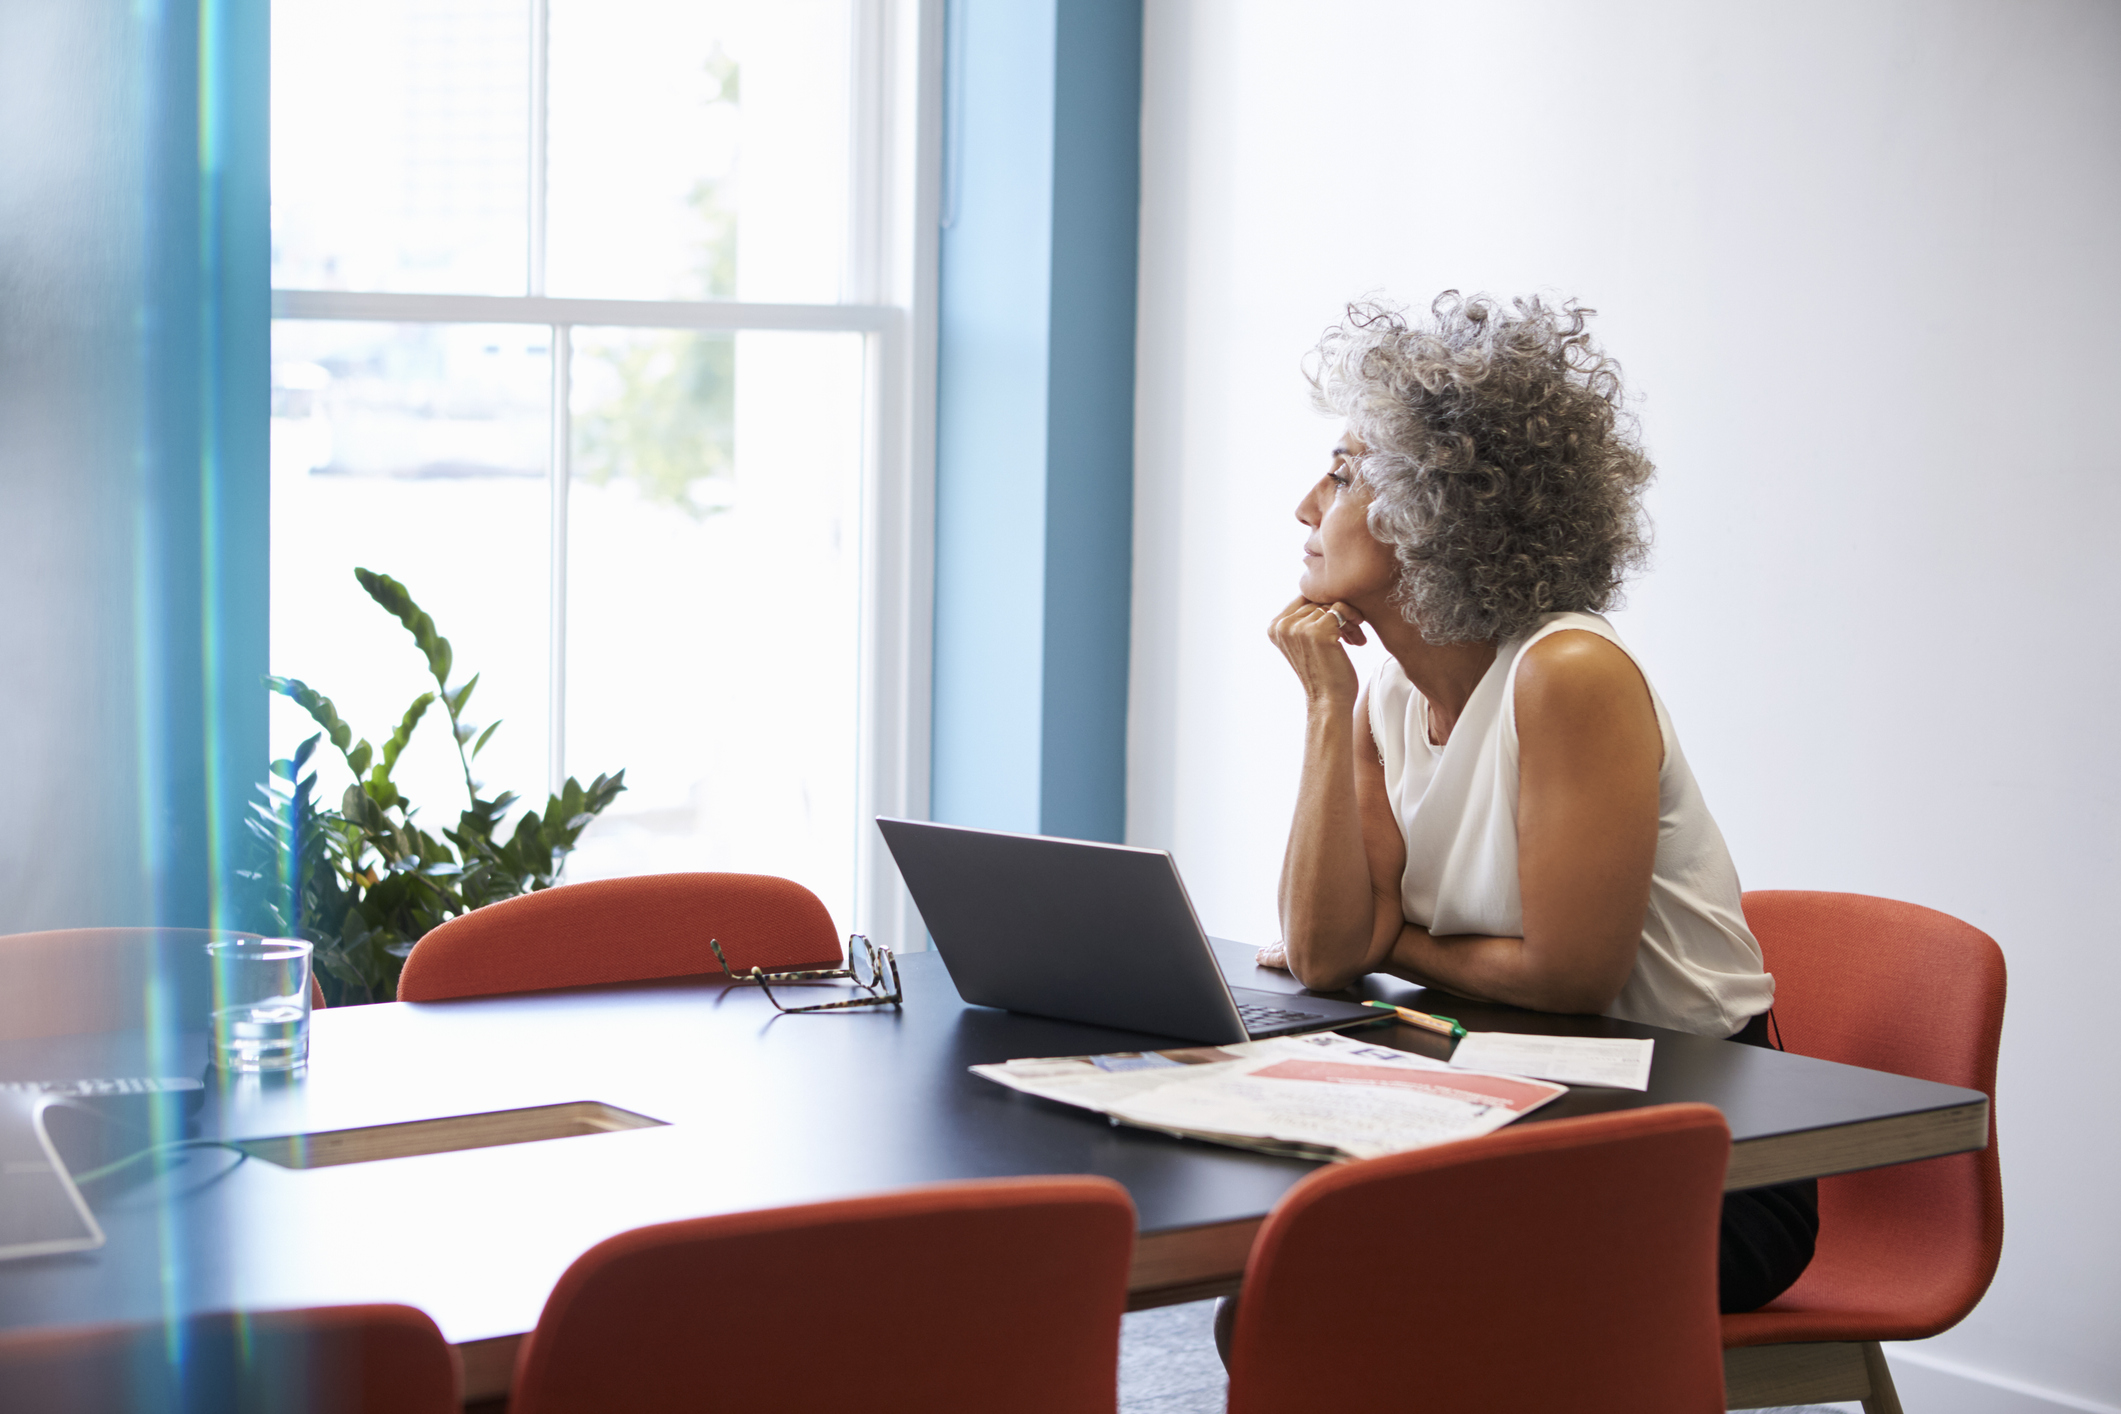 A middle-age woman sitting in an office looking thoughtful.